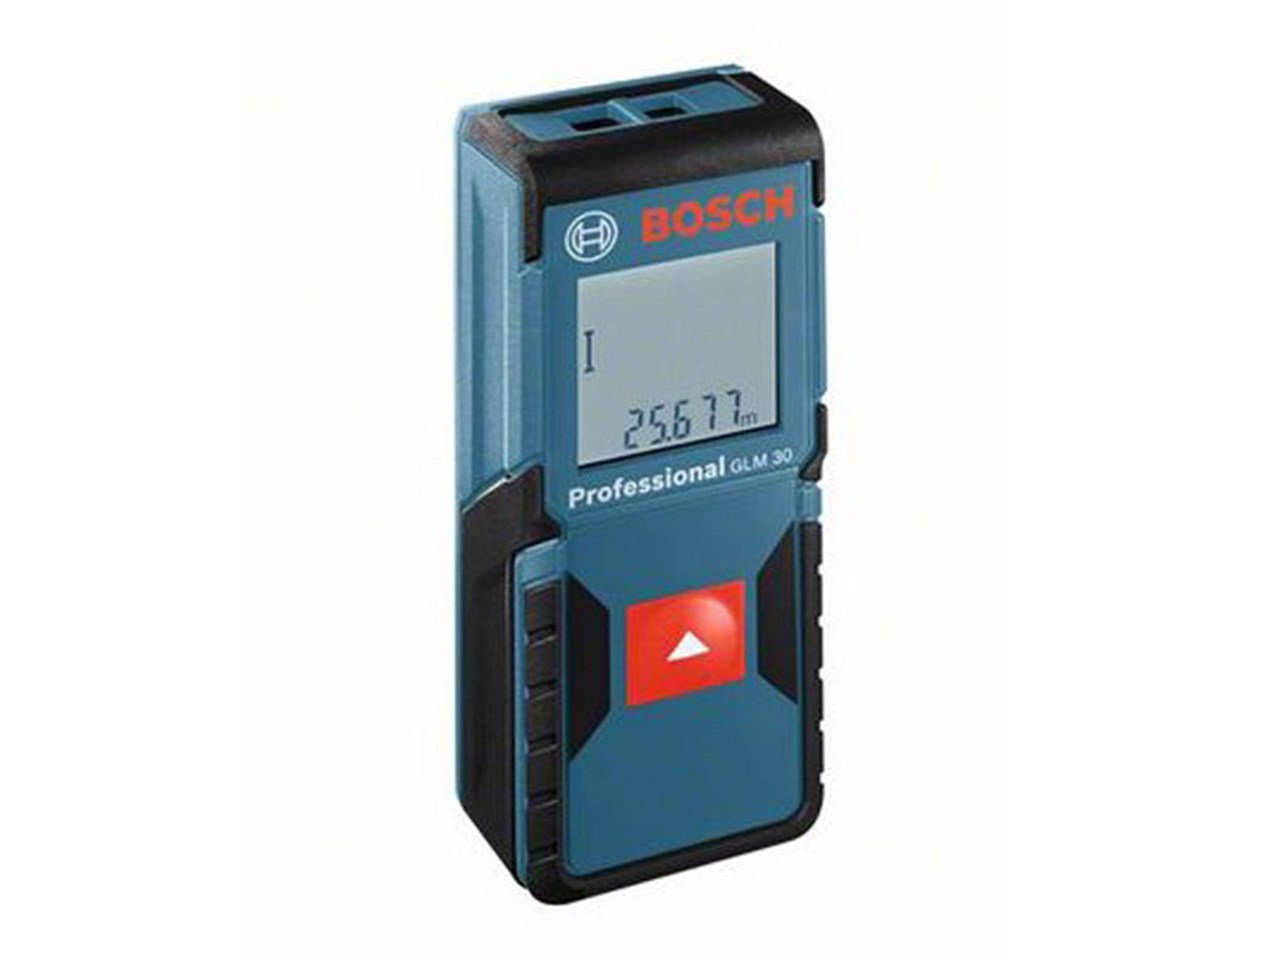 bosch glm30 30m professional laser measurer. Black Bedroom Furniture Sets. Home Design Ideas